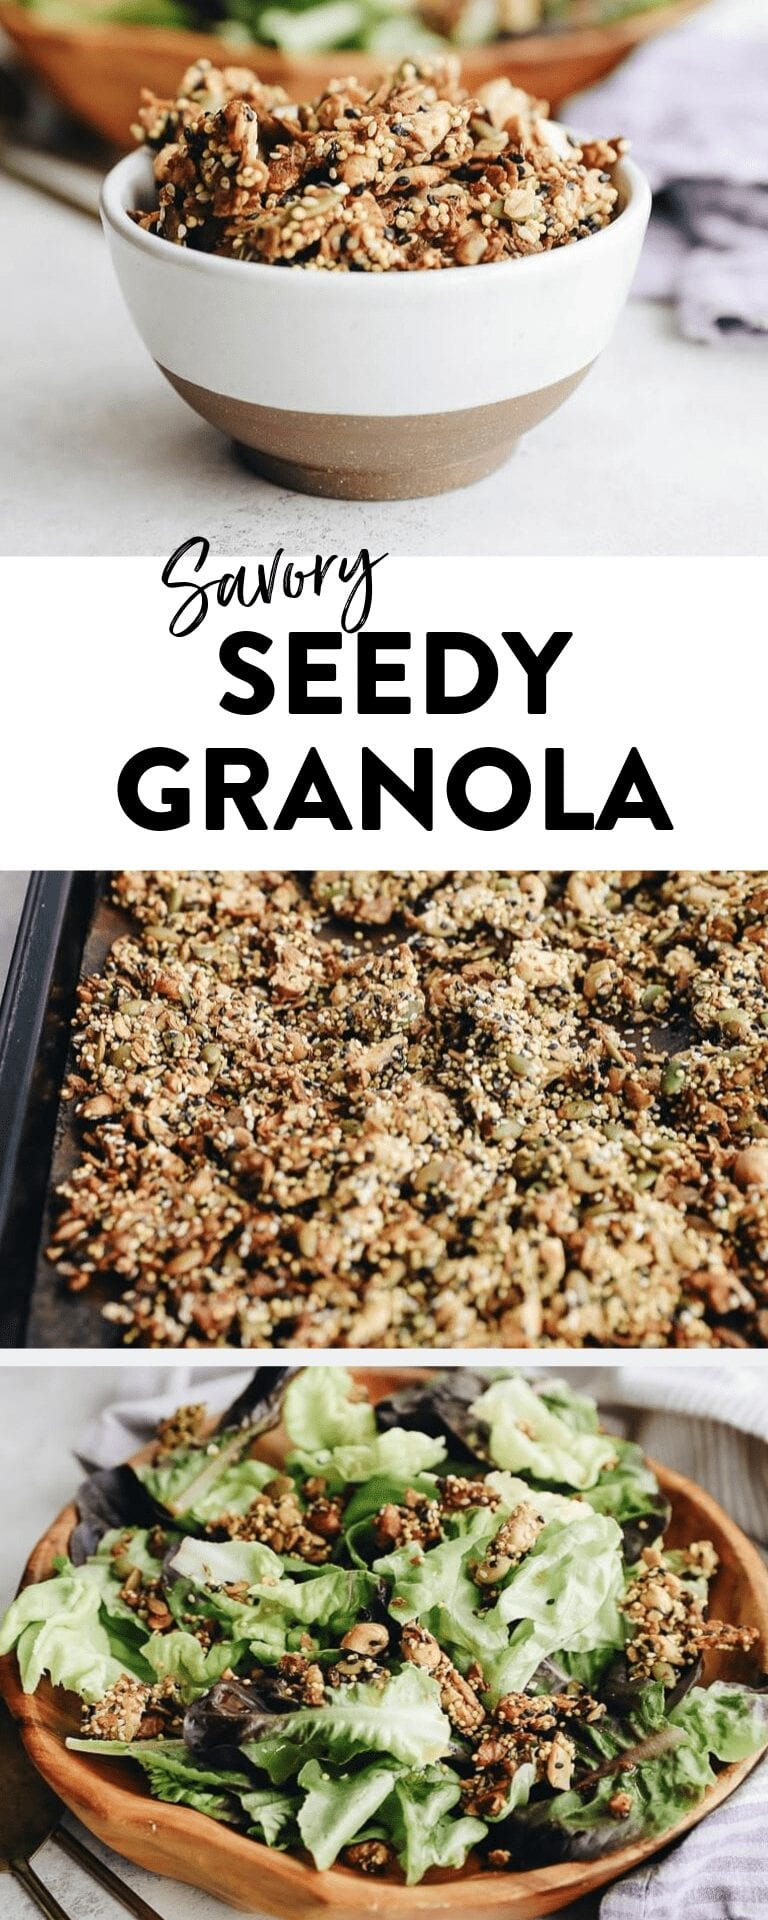 Who doesn't love a good granola recipe? And this healthy savory granola is no exception! It's packed-full of flavor and a great nutrition boost to every meal. Don't knock it till you try it! #savorygranola #granolarecipe